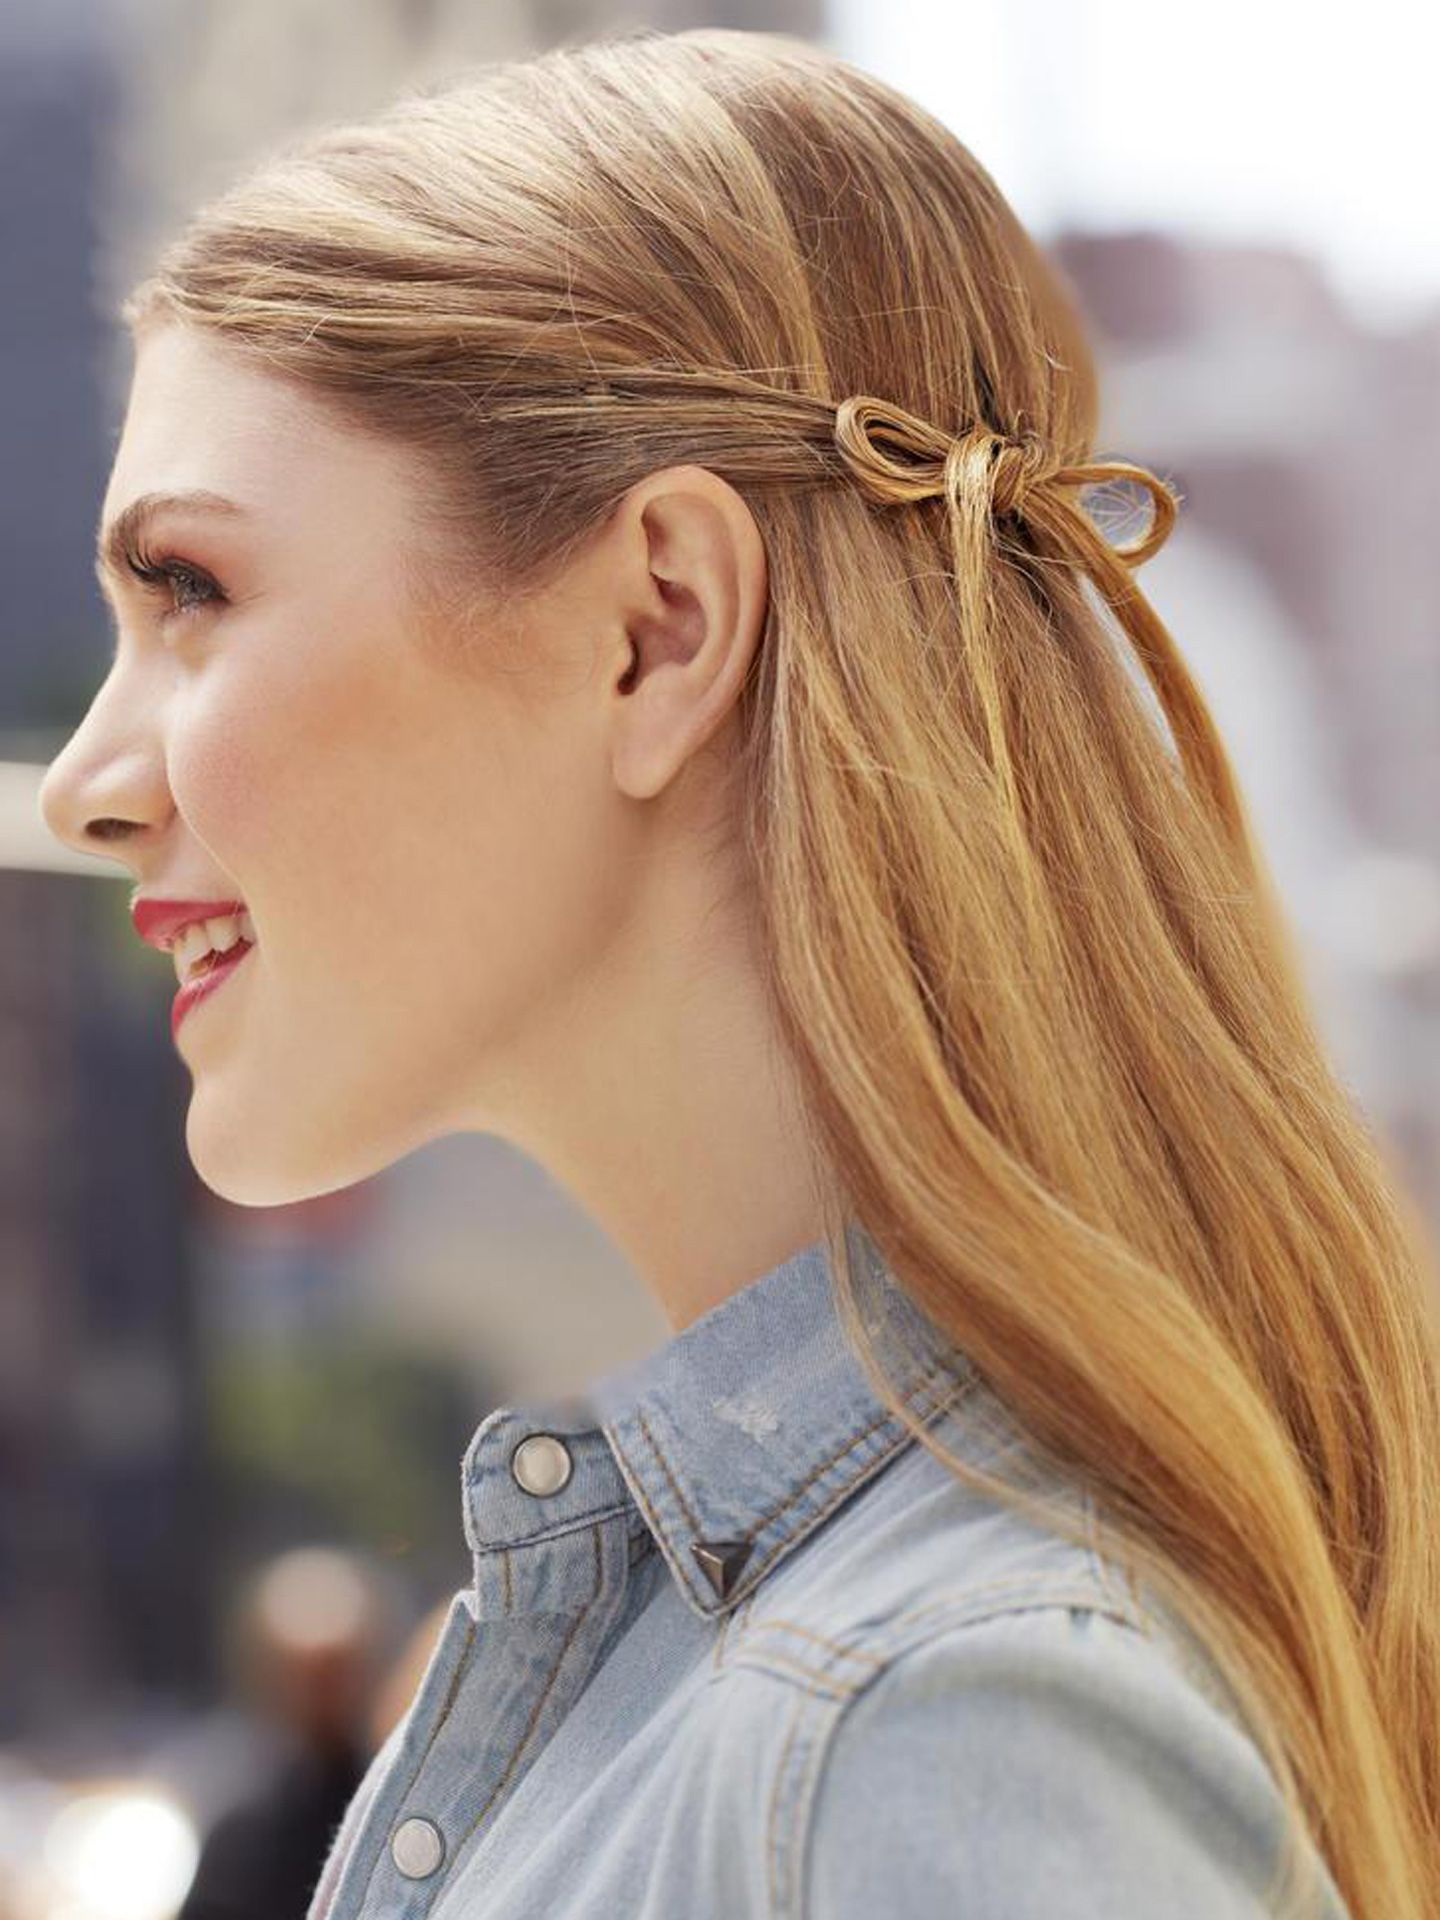 16 Epic New Years Eve Hairstyle Ideas Hair Inspiration For Nye 2018